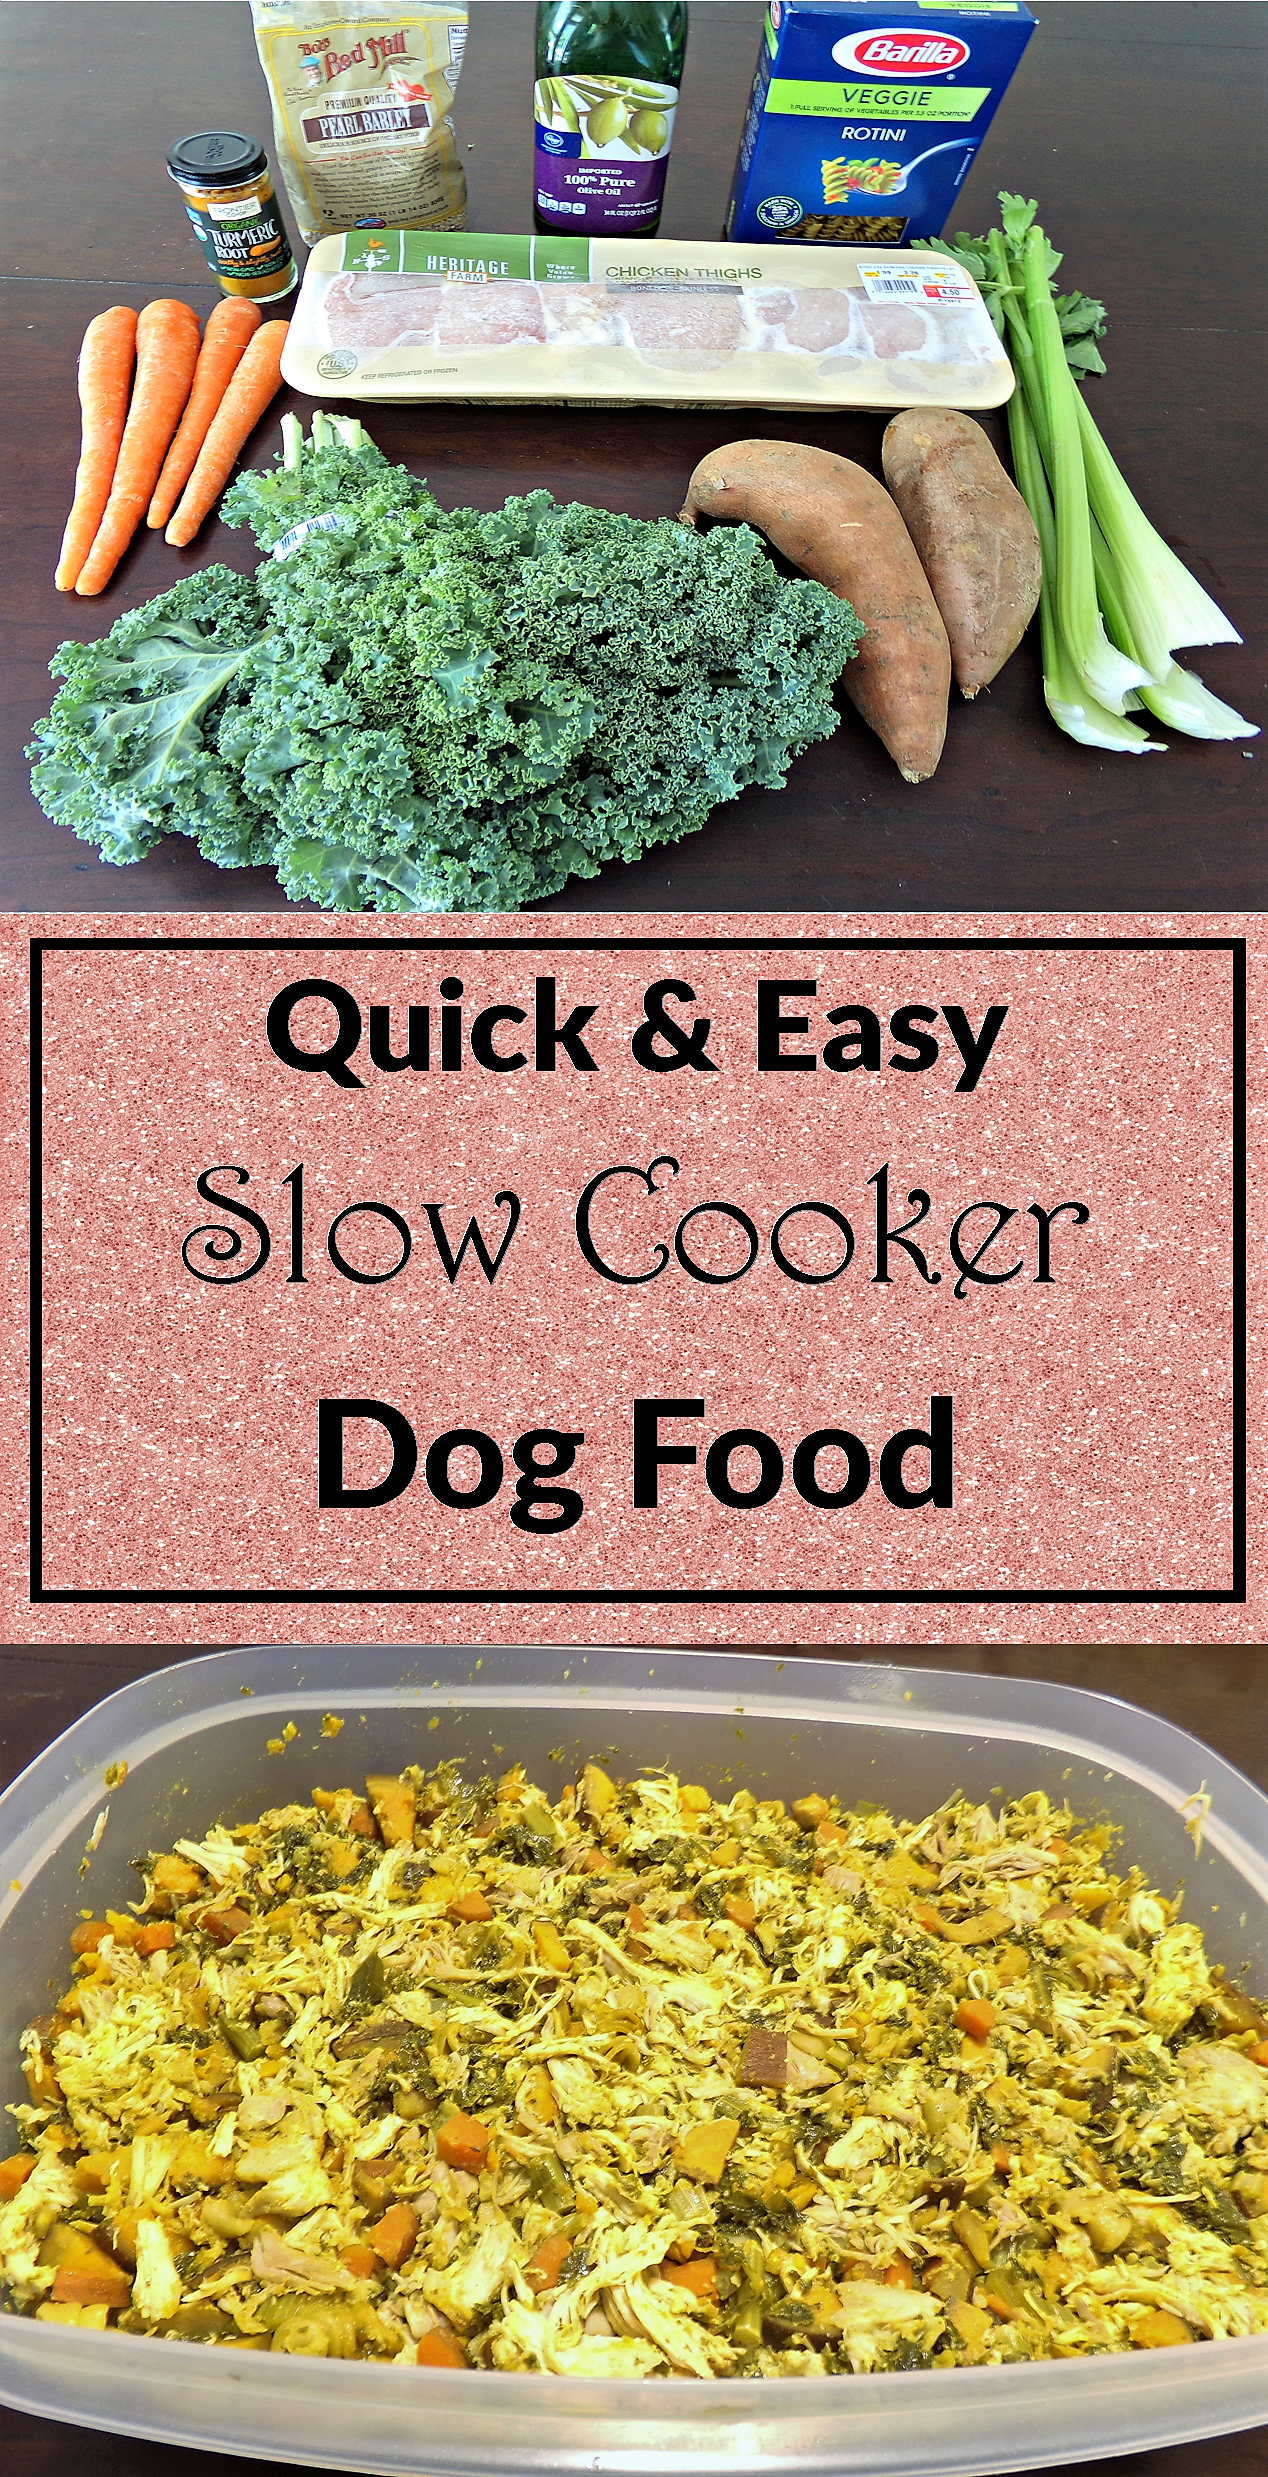 A quick and easy slow cooker dog food recipe crock pot dog food a quick and easy slow cooker dog food recipe crock pot dog food forumfinder Choice Image